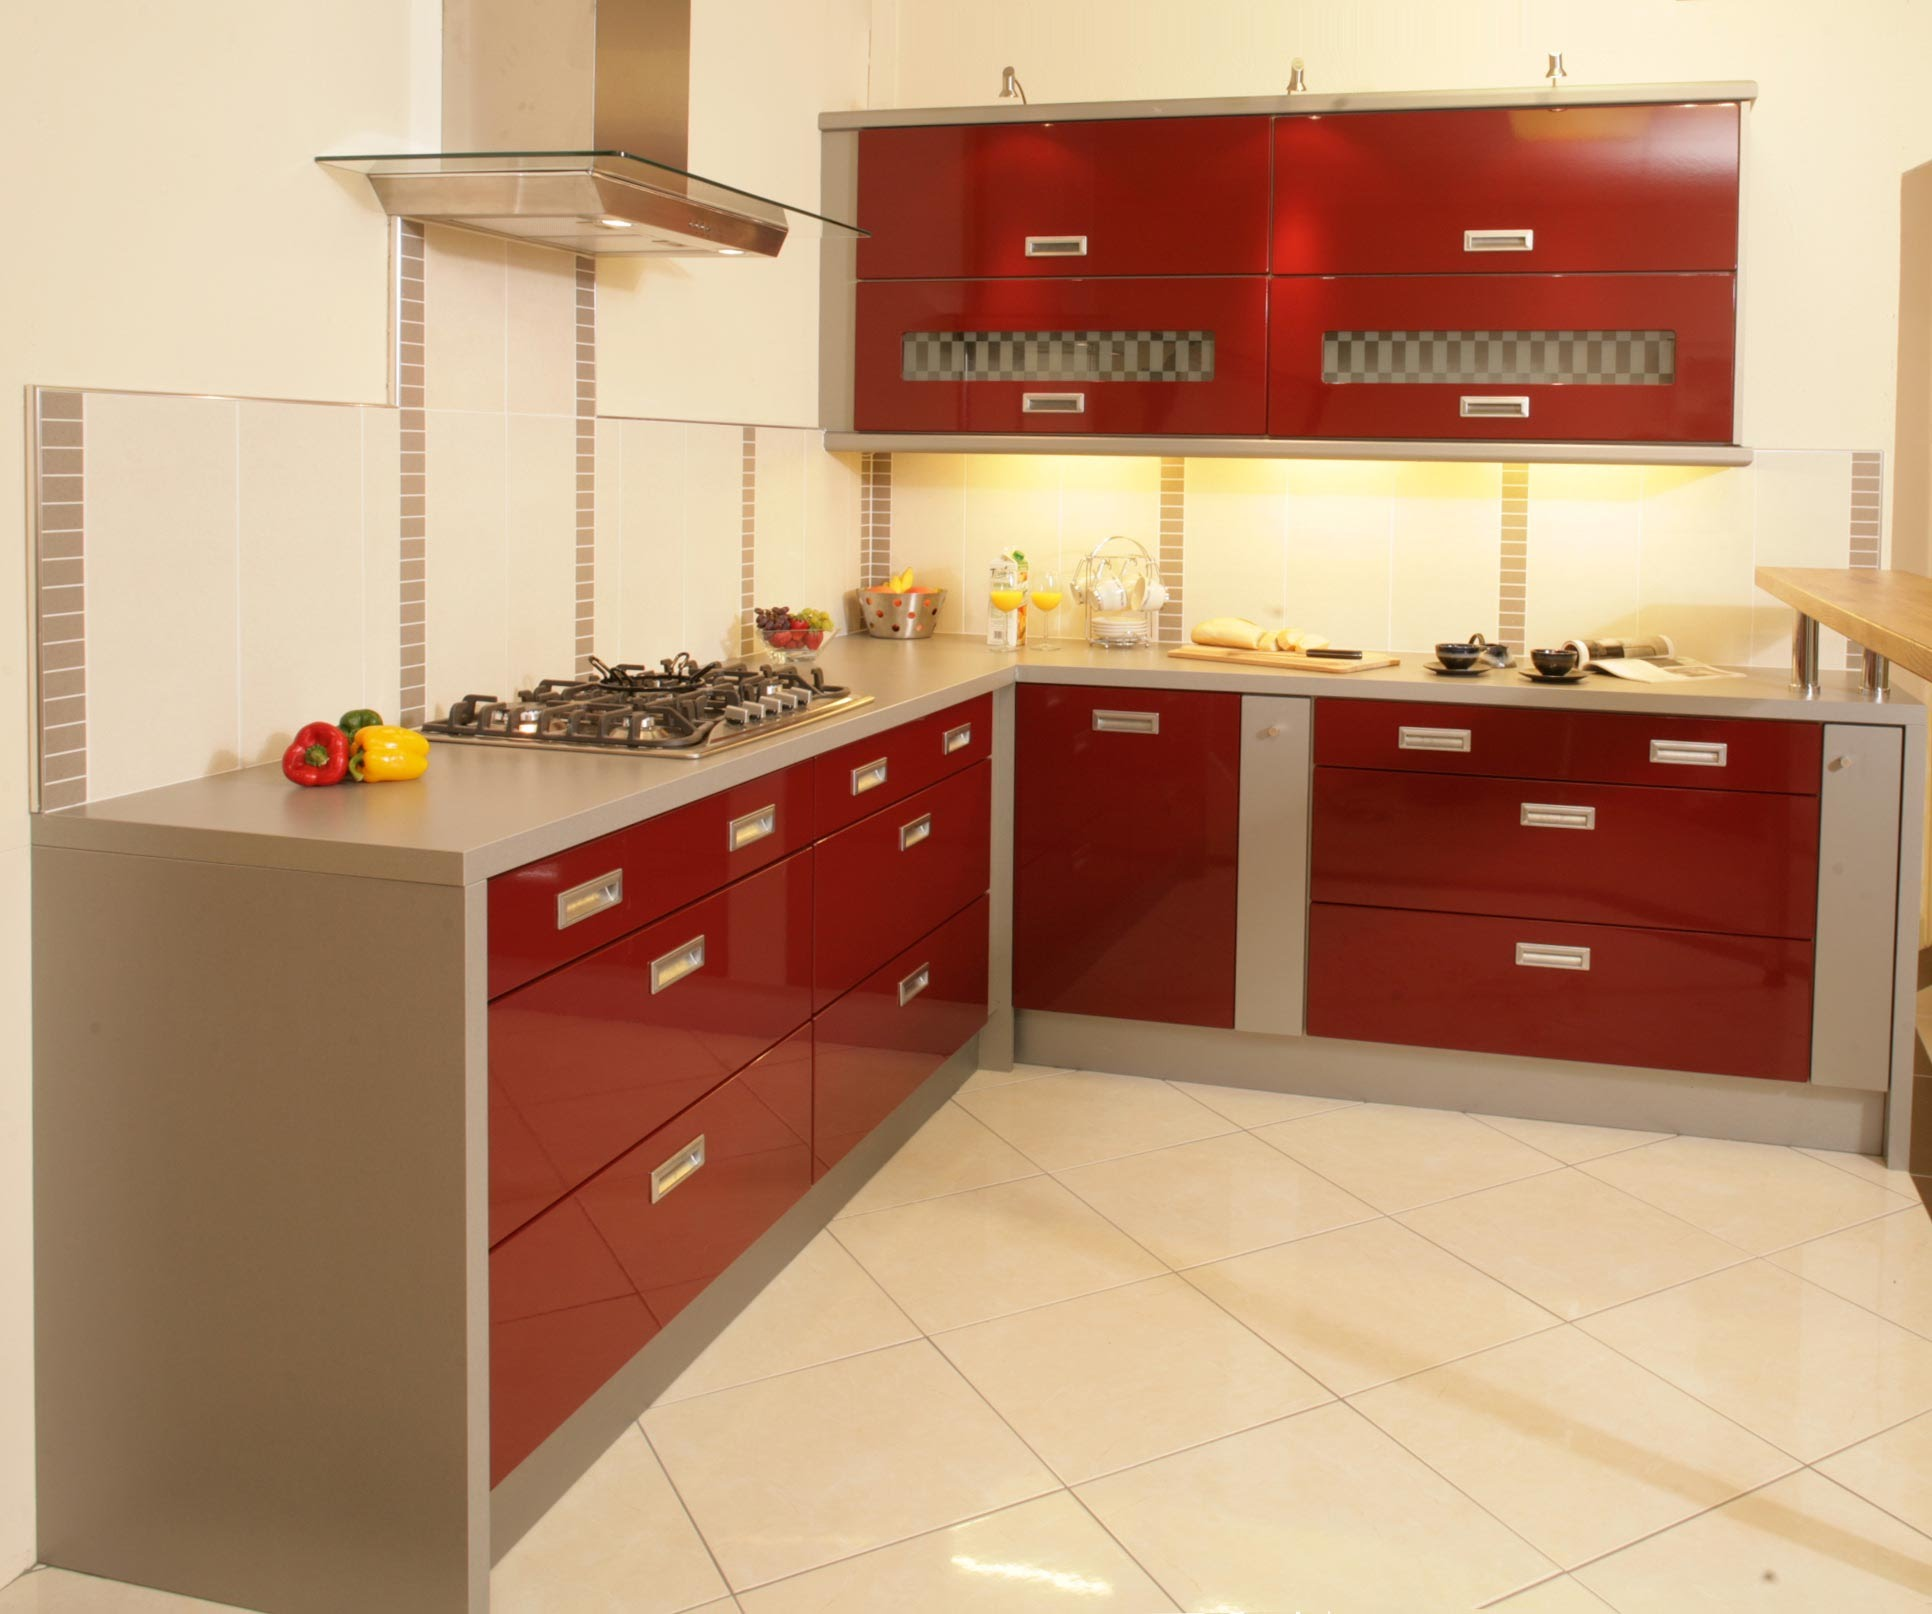 New Small Indian Kitchen Design Winda Furniture - Small space modular kitchen designs for modular kitchens small spaces